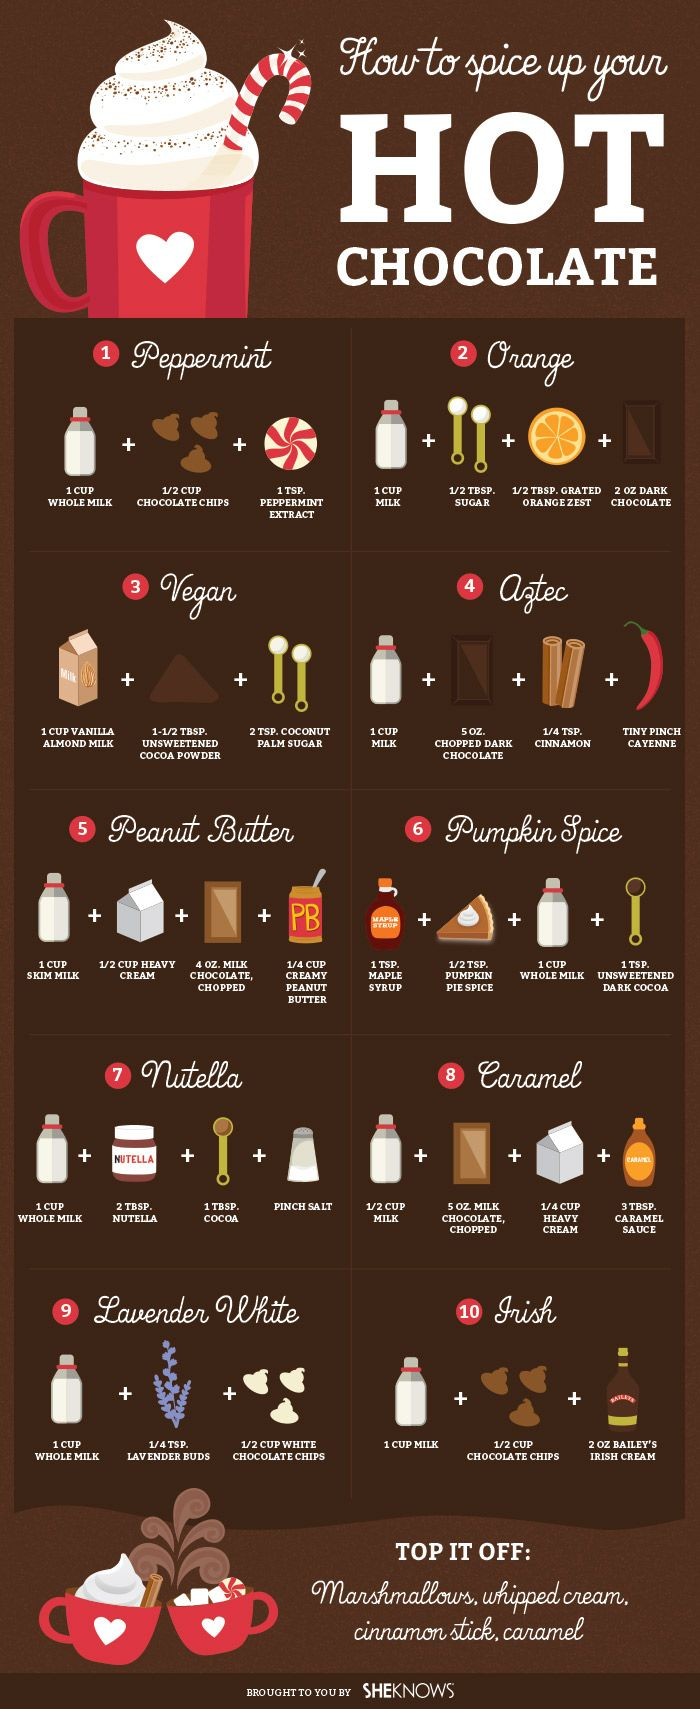 How to Spice Up Your Hot Chocolate. Hot drinks galore! Just in time for winter.